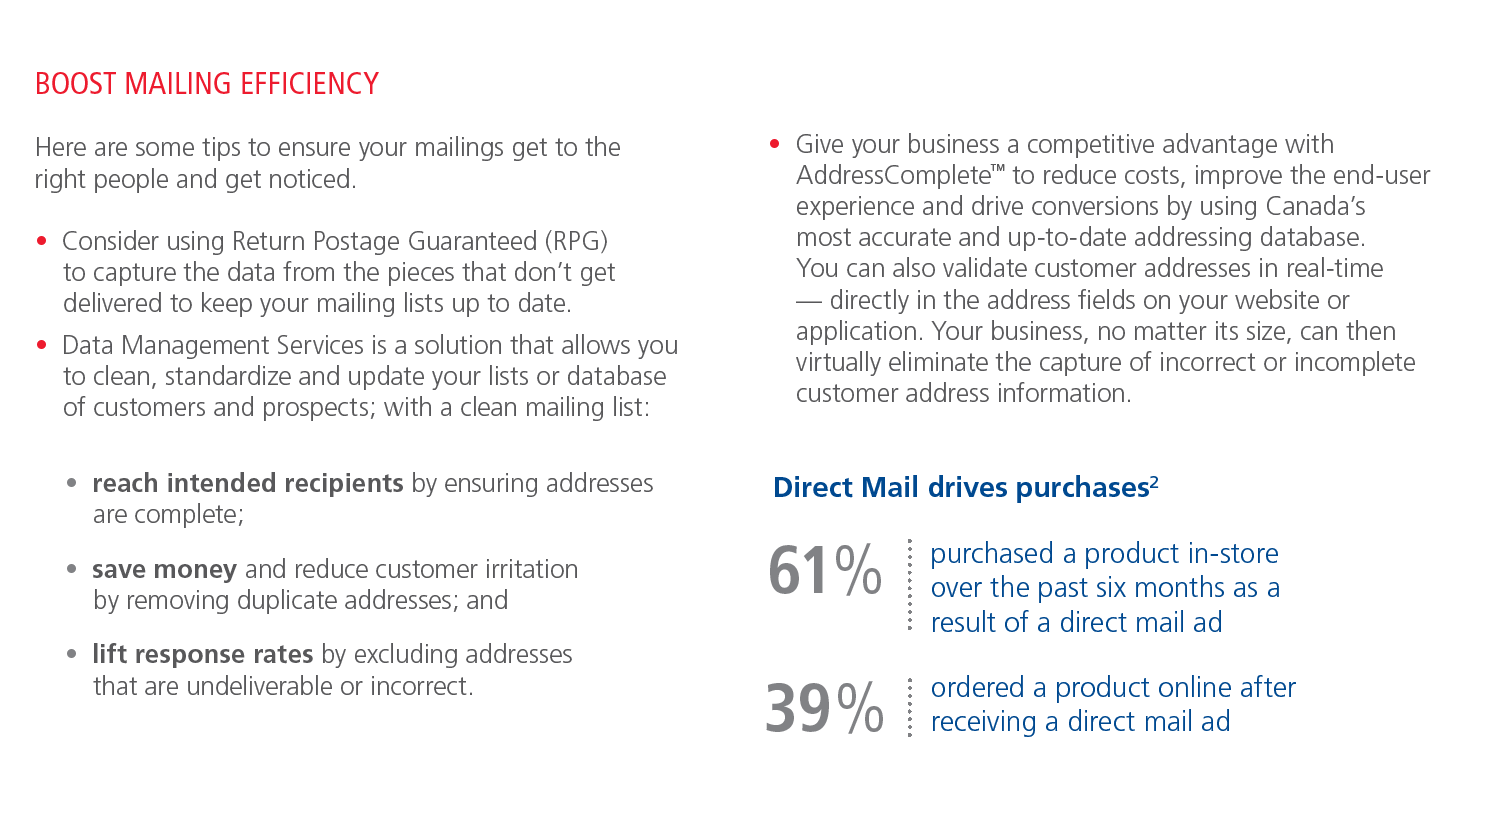 Source: Canada Post: Personalized Mail, August 30, 2018  View Canada Posts full PDF on their website.